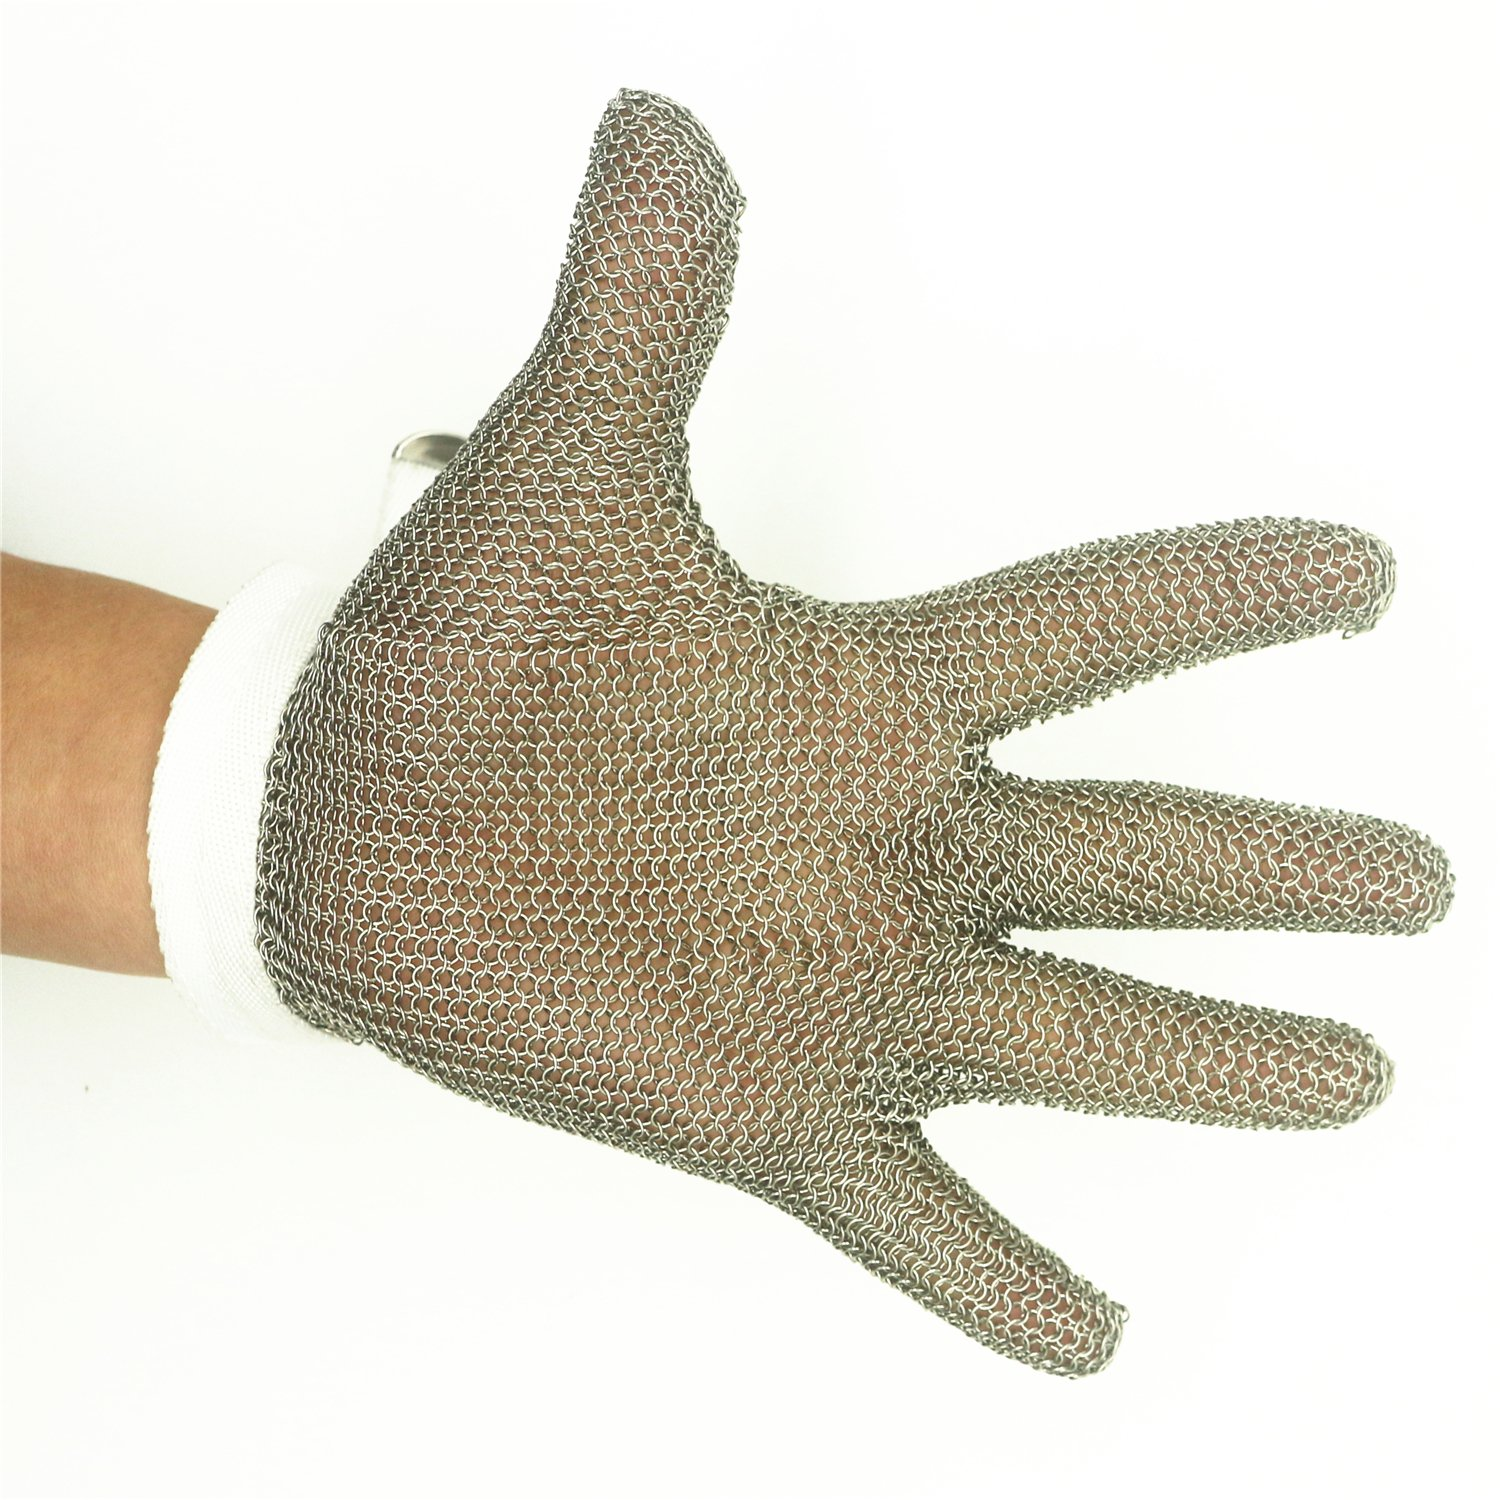 Inf-way 304L Brushed Stainless Steel Mesh Cut Resistant Chain Mail Gloves Kitchen Butcher Working Safety Glove As Seen On TV 1pcs SSG001 Medium